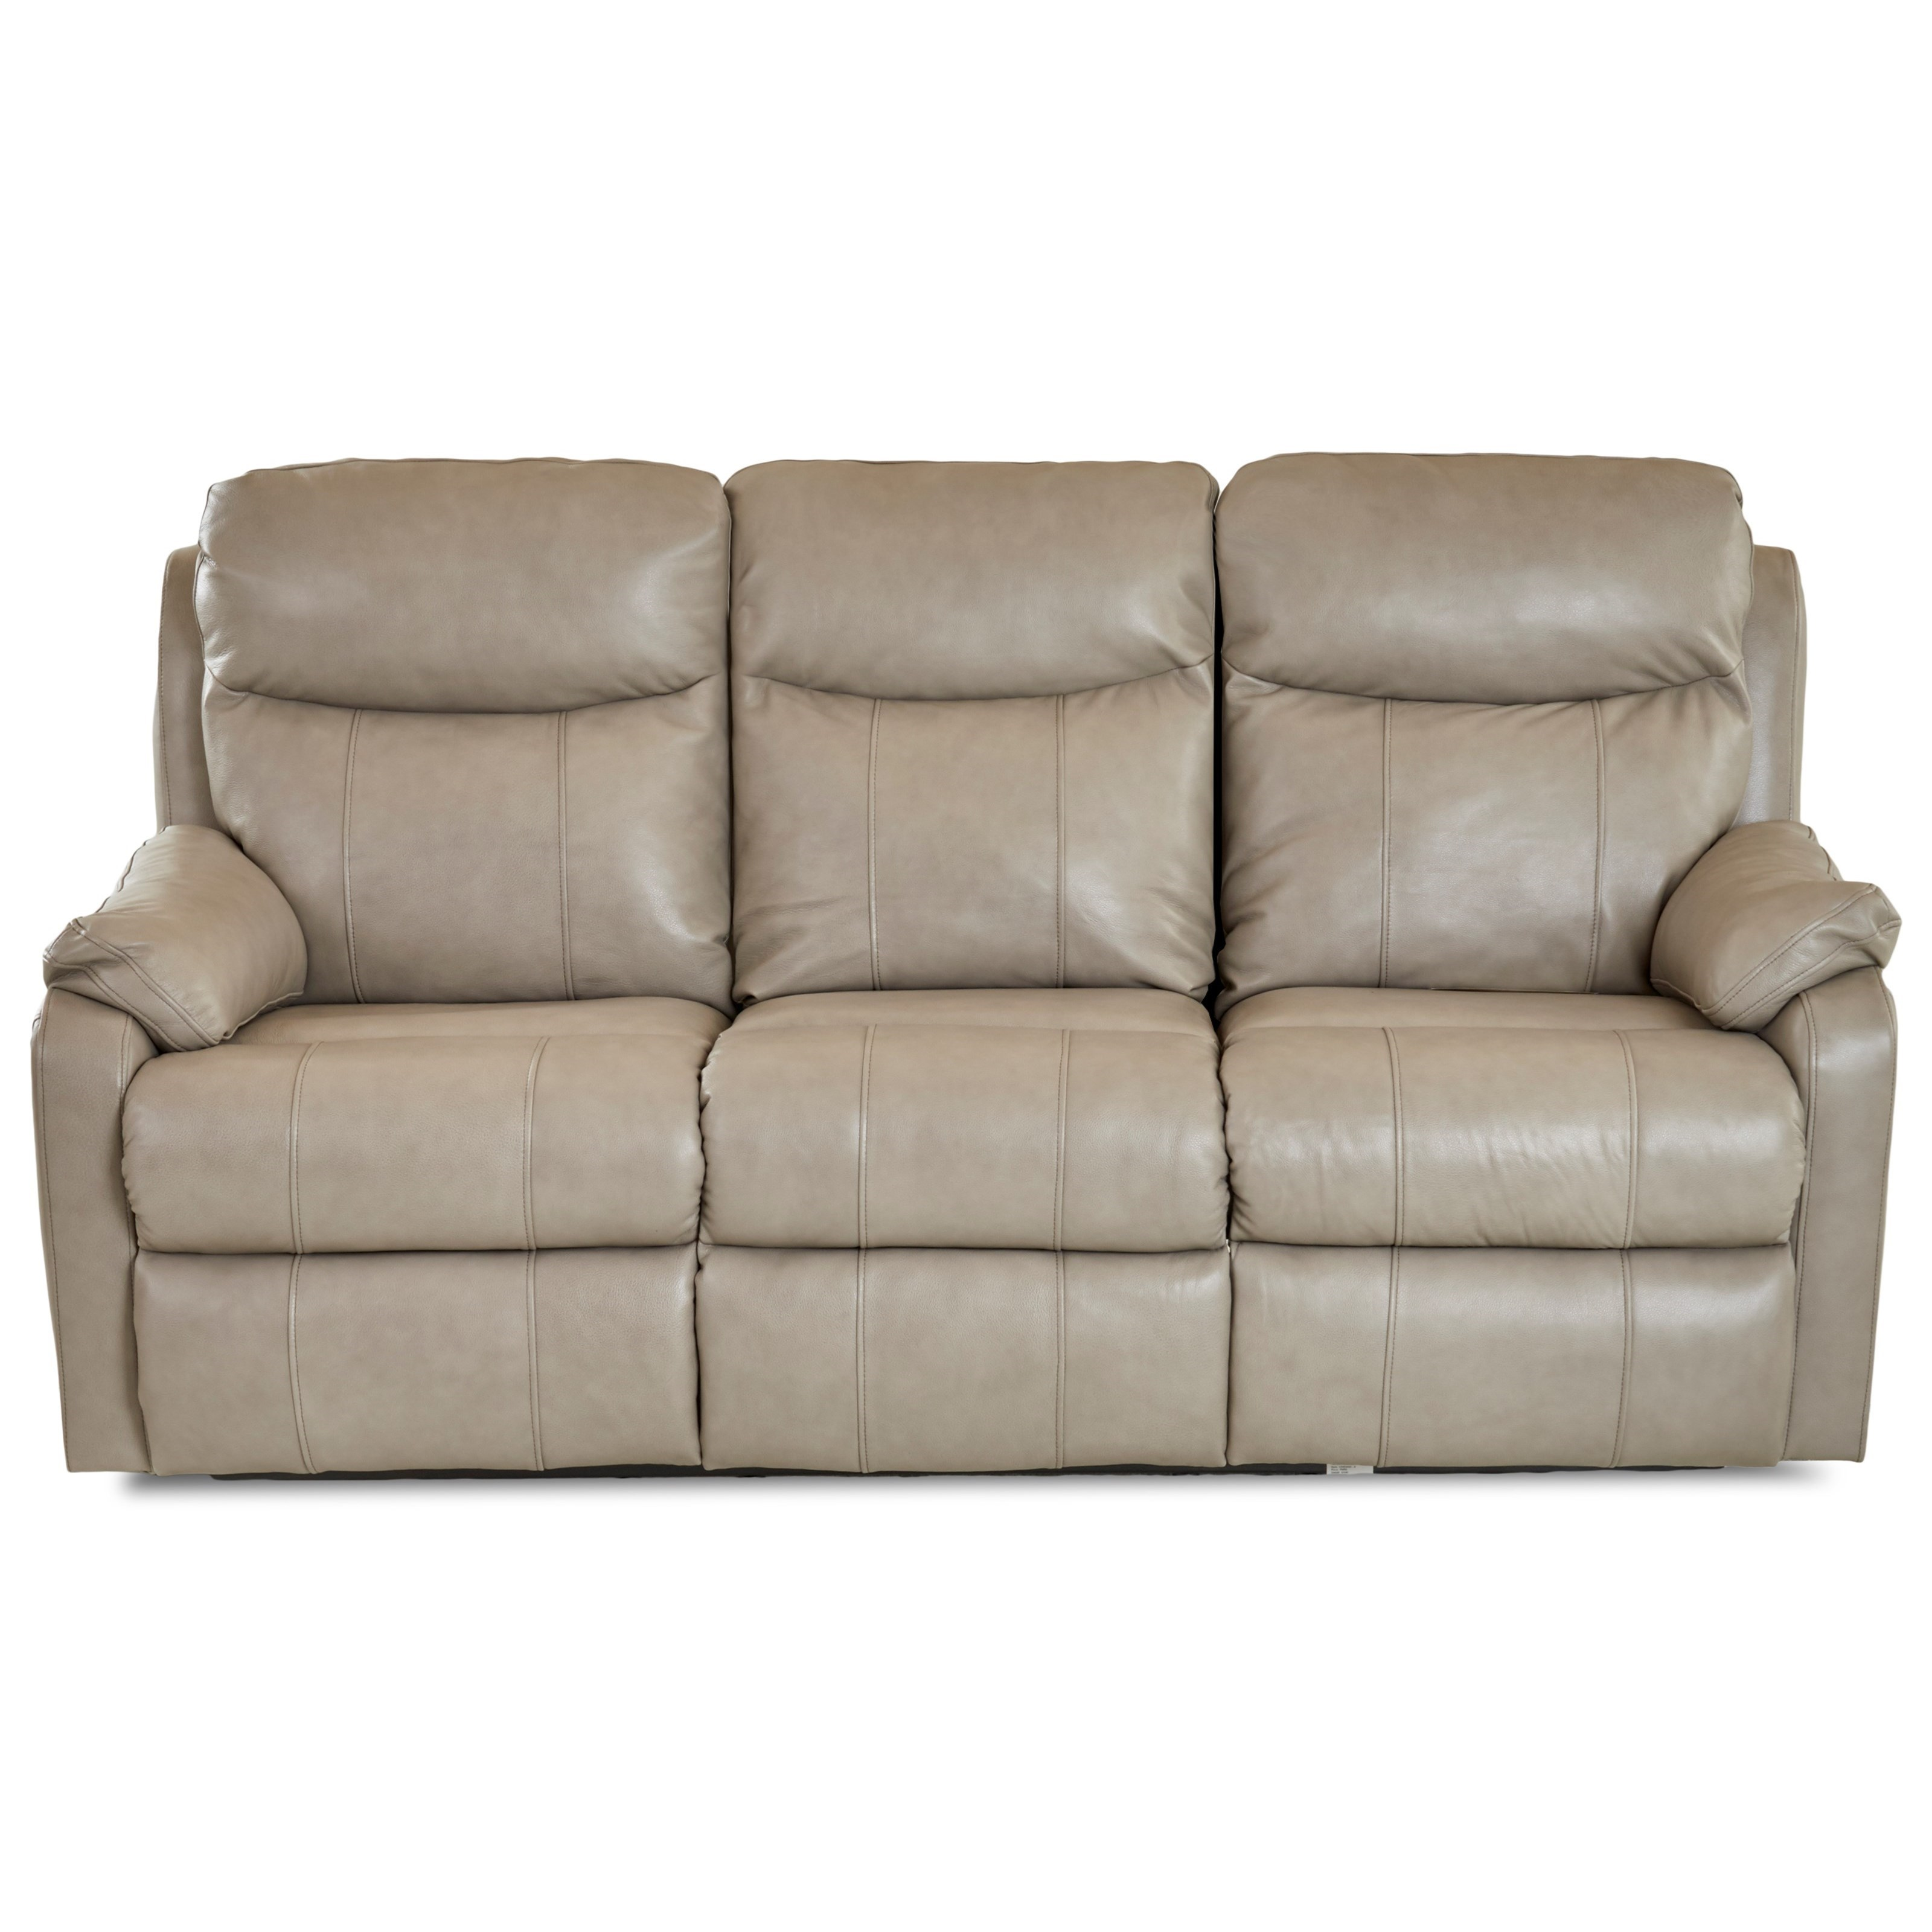 Solitaire Power Reclining Sofa by Klaussner at Stuckey Furniture